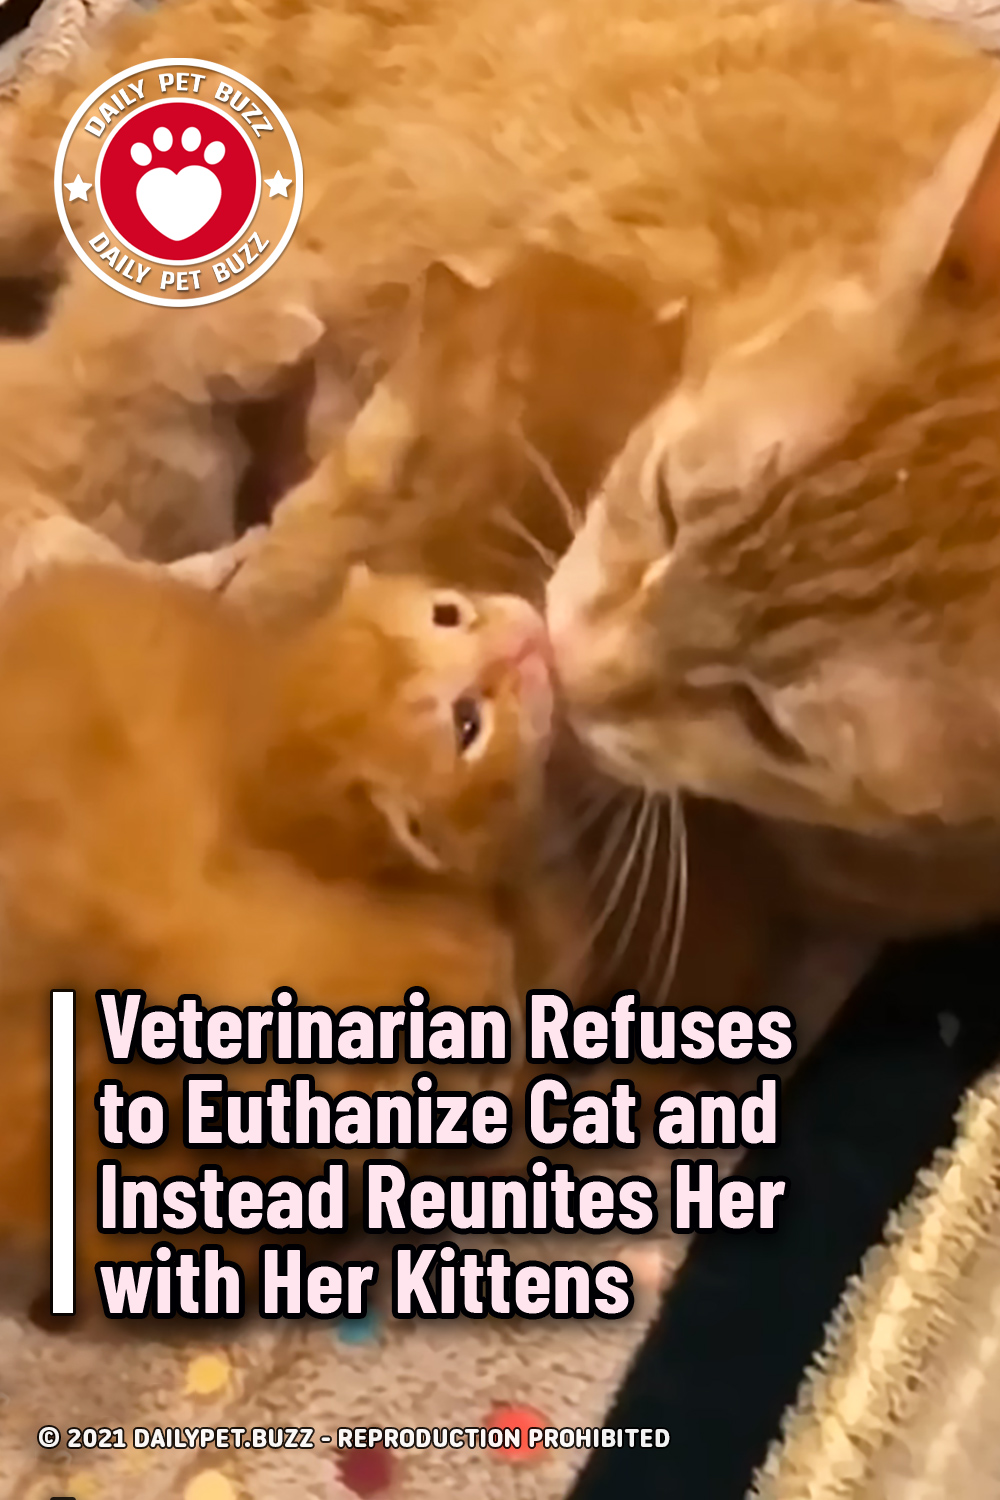 Veterinarian Refuses to Euthanize Cat and Instead Reunites Her with Her Kittens